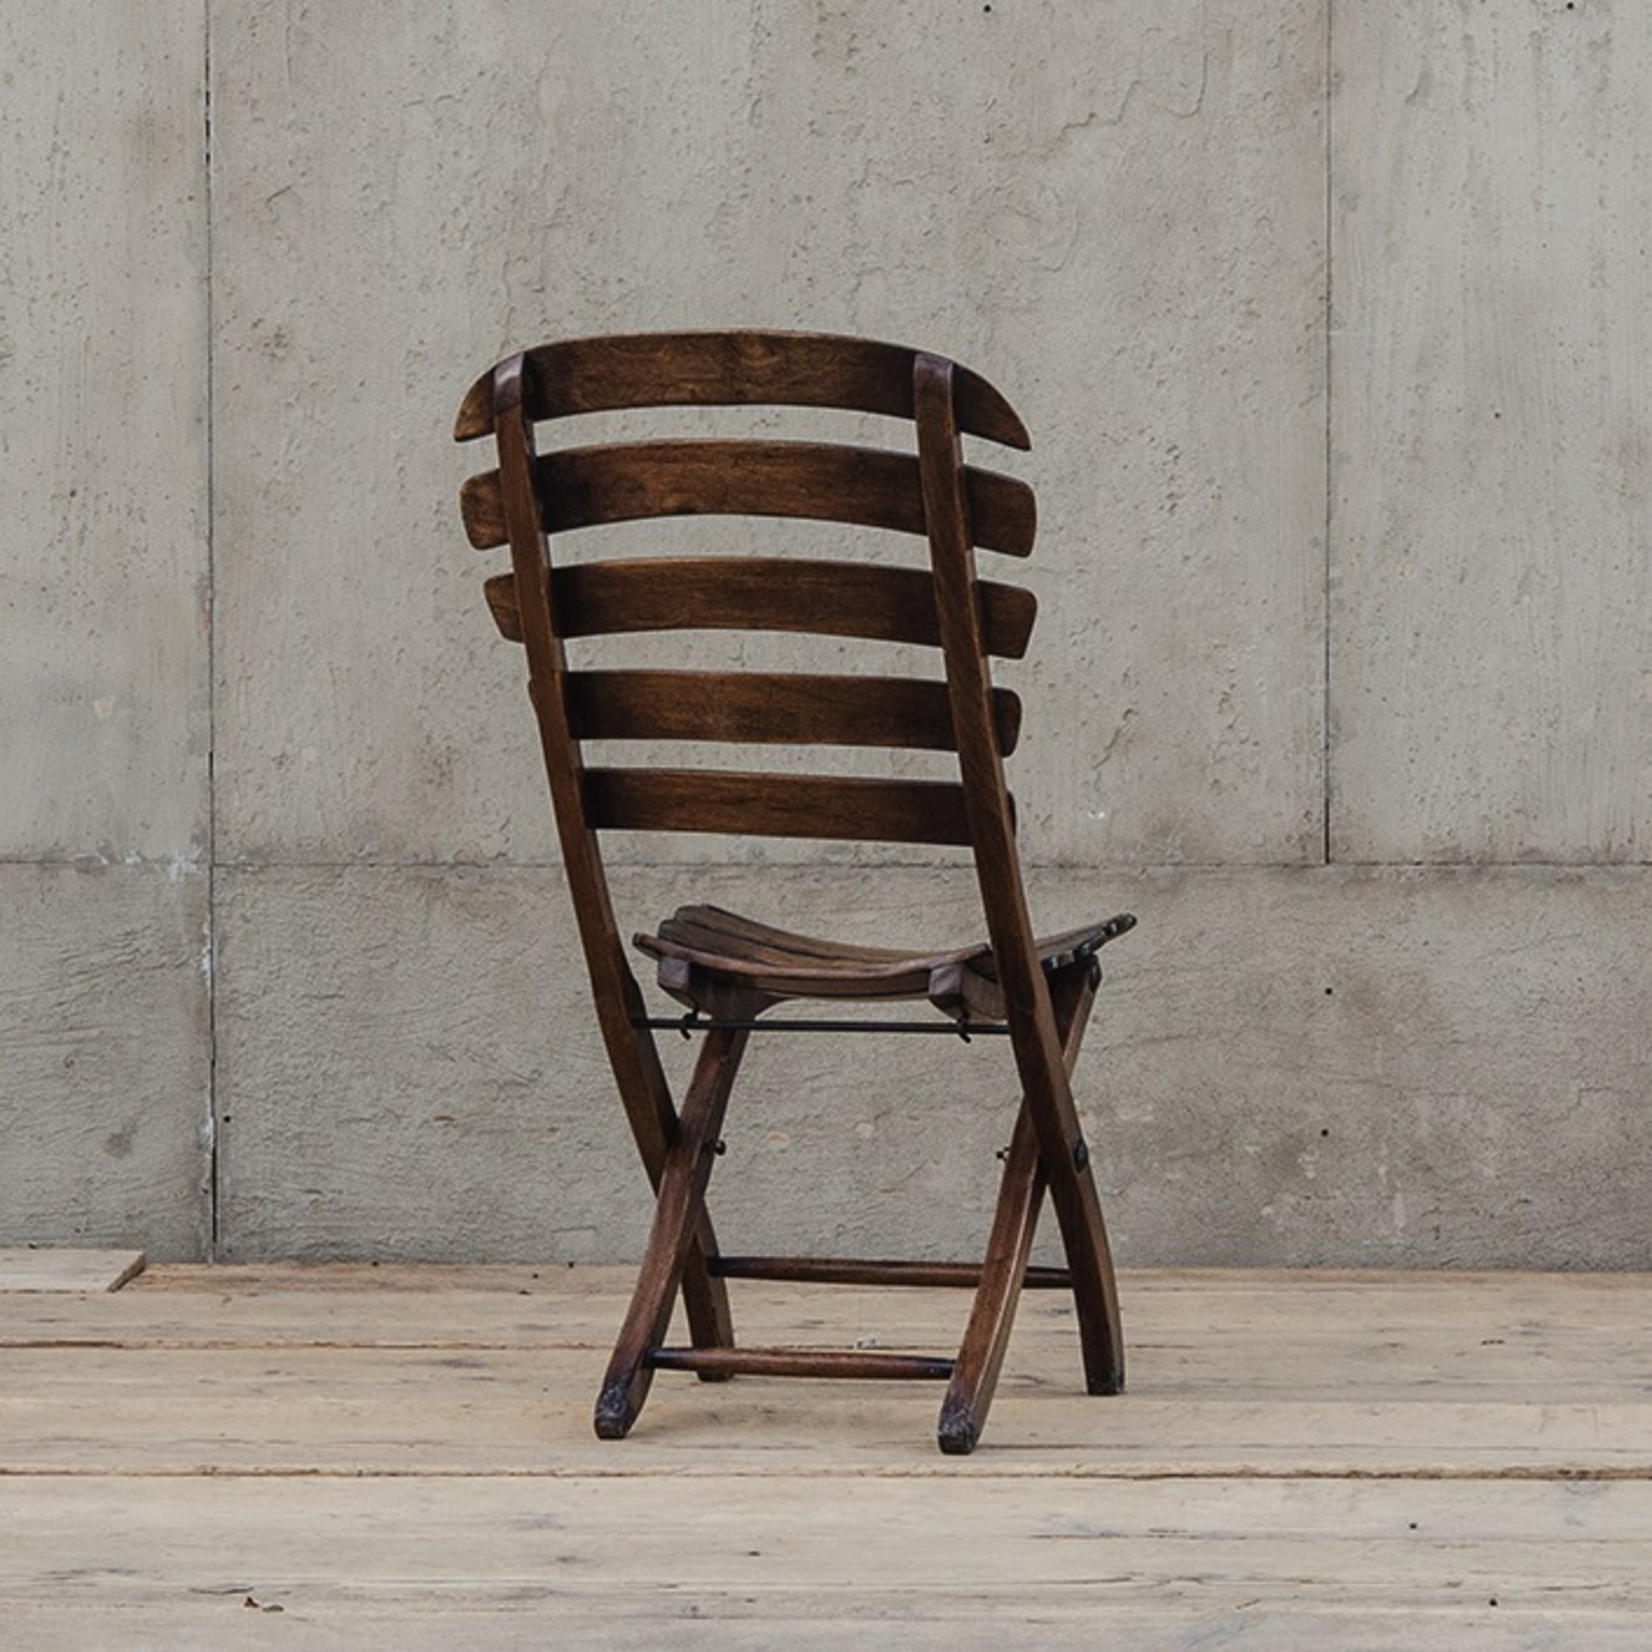 VAN THIEL THE CHAIR WITH A SMILE